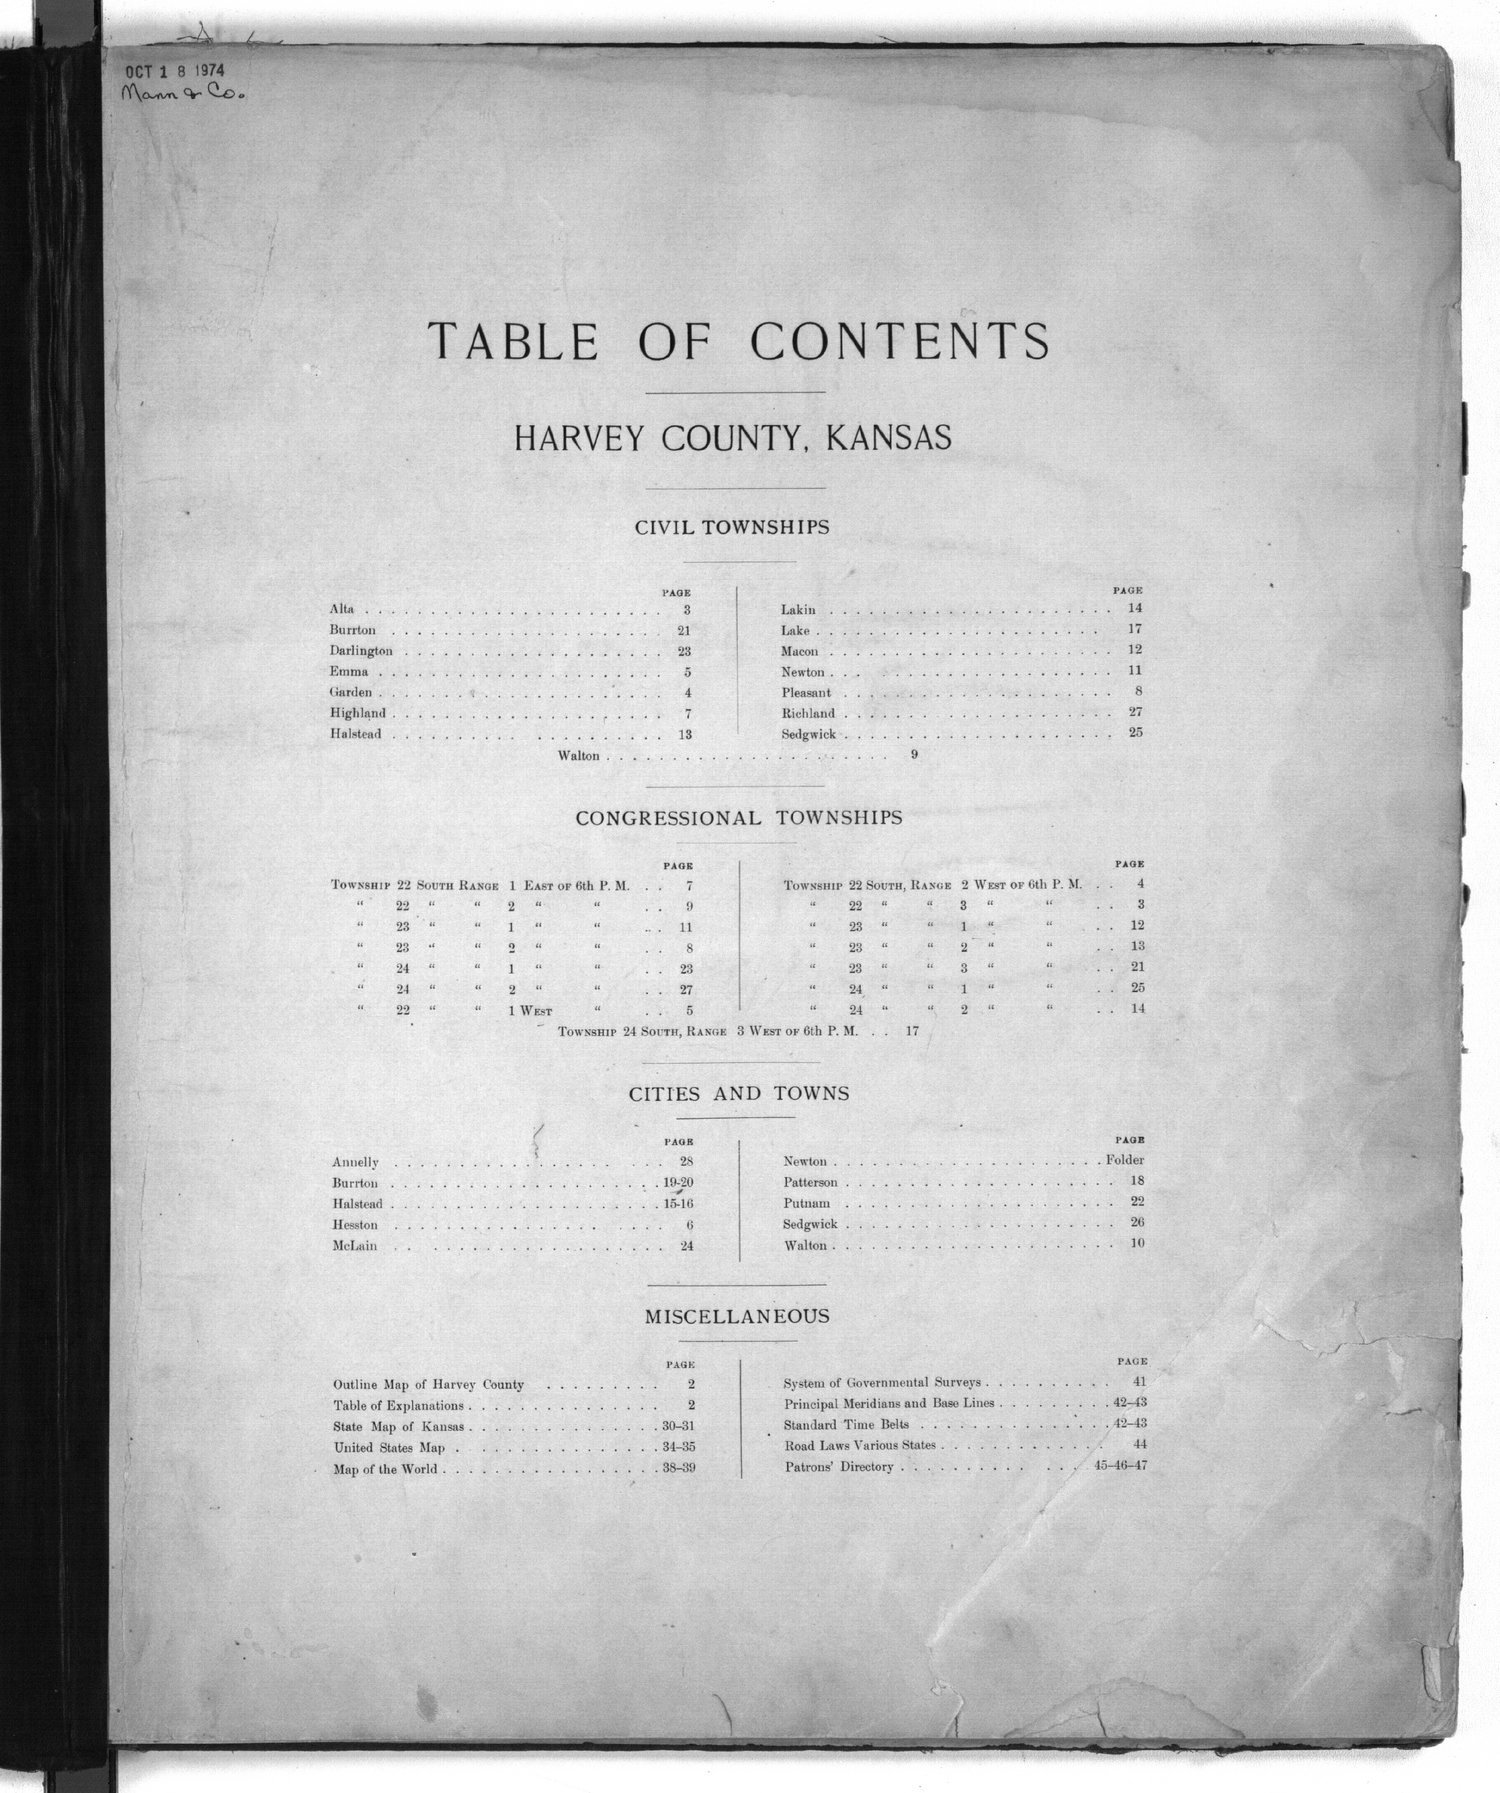 Plat book of Harvey County, Kansas - Table of Contents